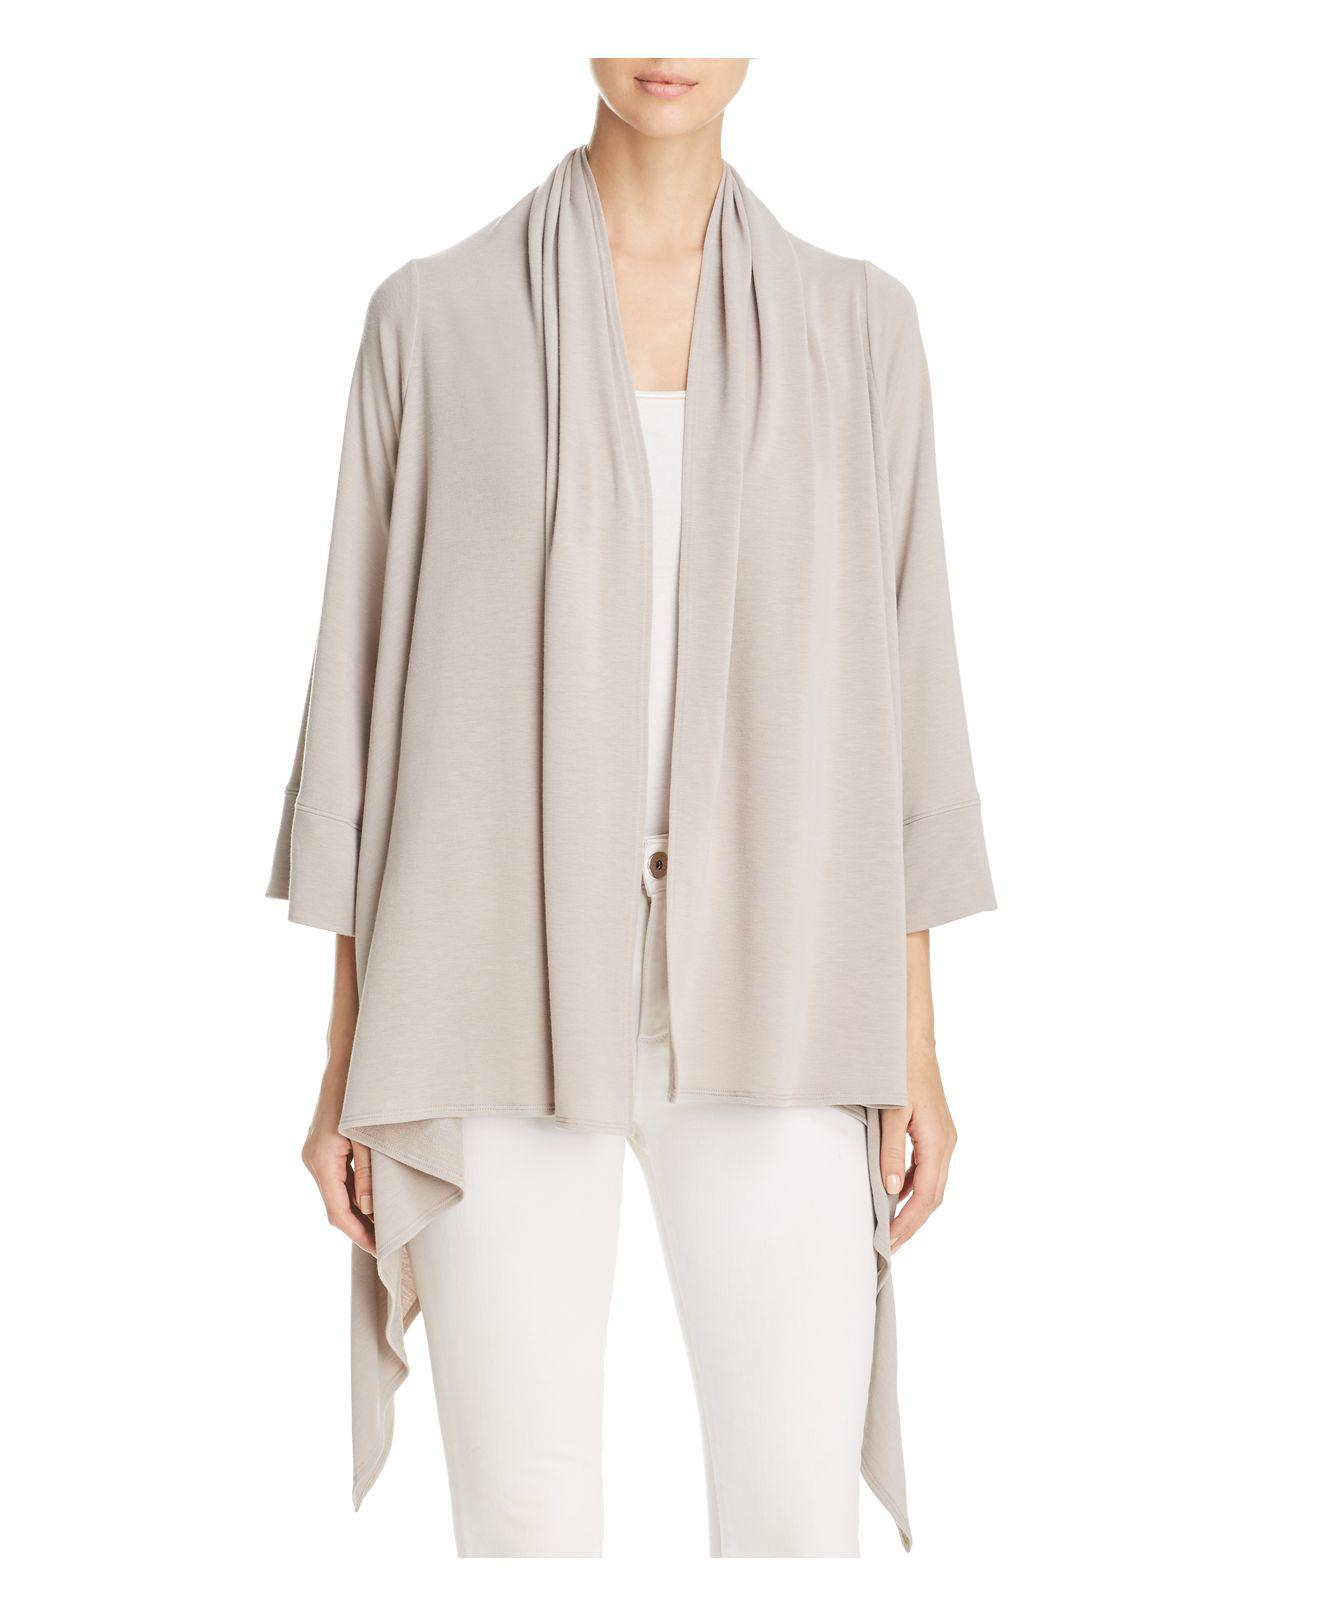 Nally & millie Open Waterfall Cardigan | Lyst